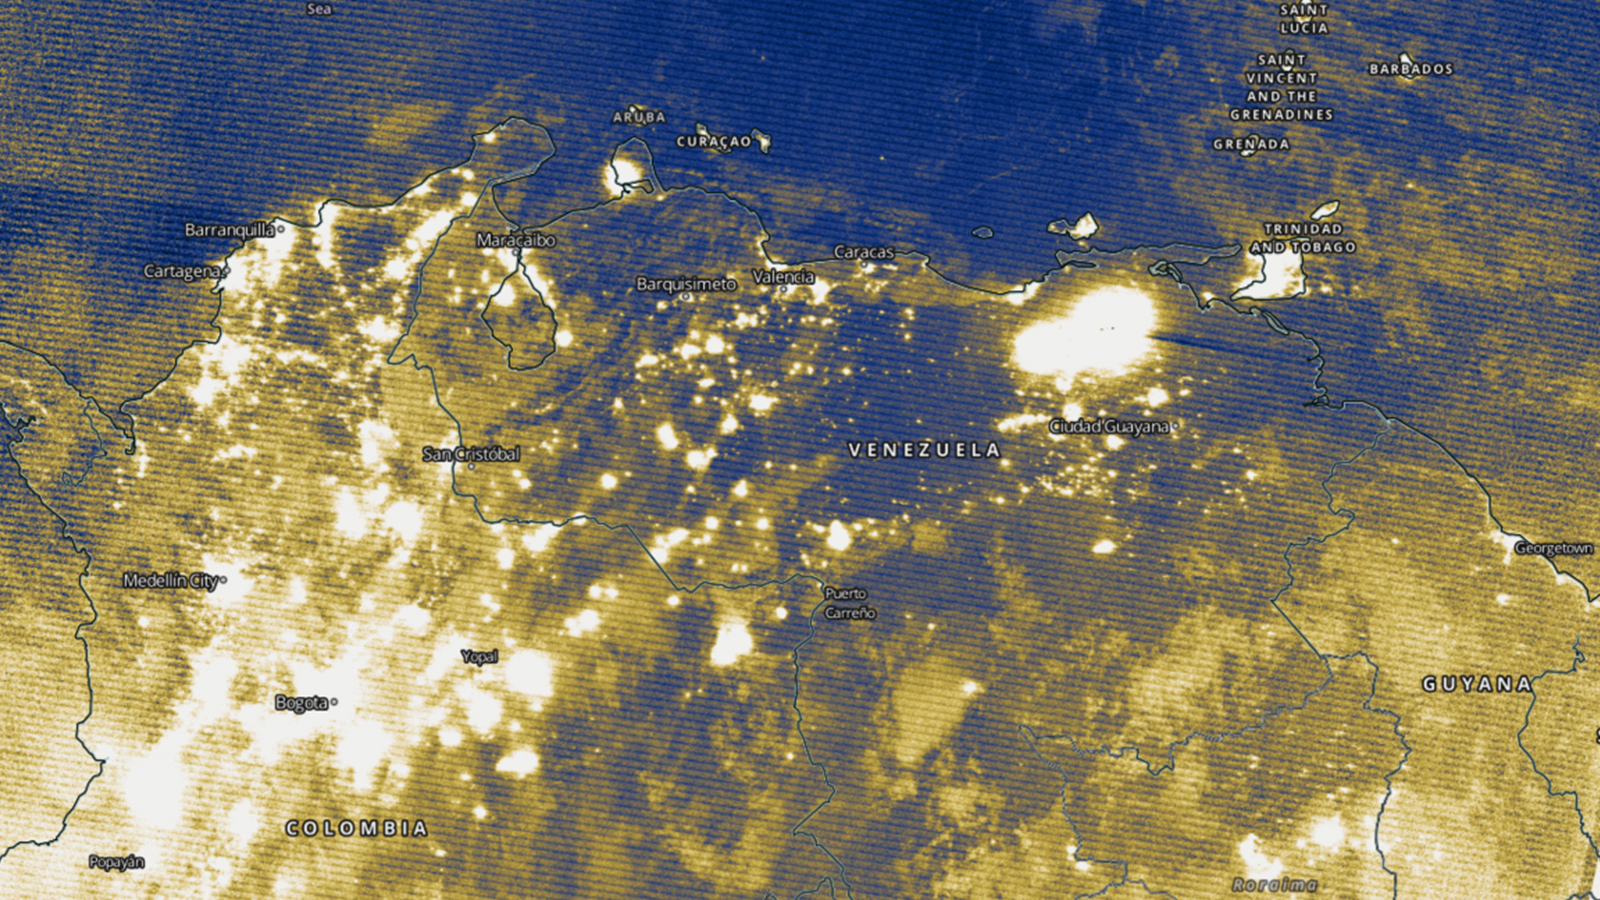 Image of Venezuela's electricity map after the blackout.